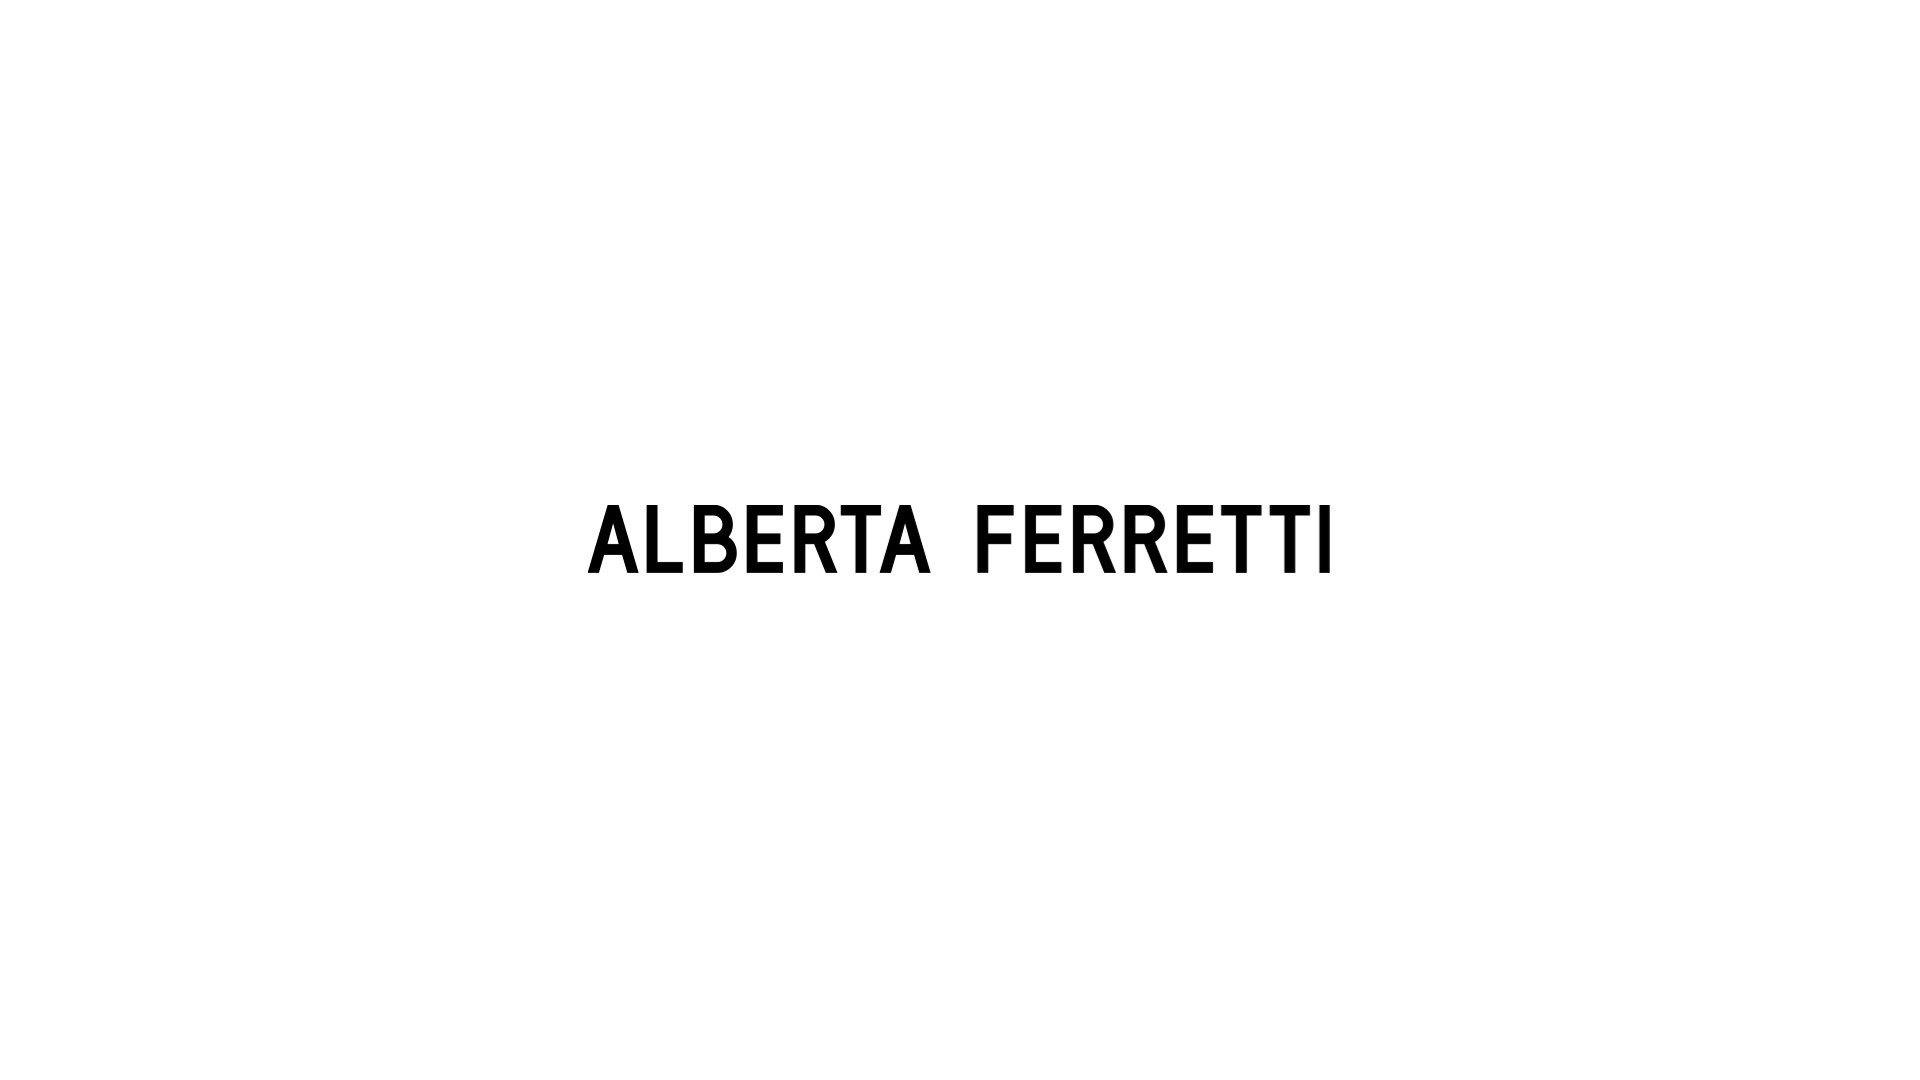 Alberta Ferretti Spring Summer 2016 Women's Runway Show Live Streaming September 23rd